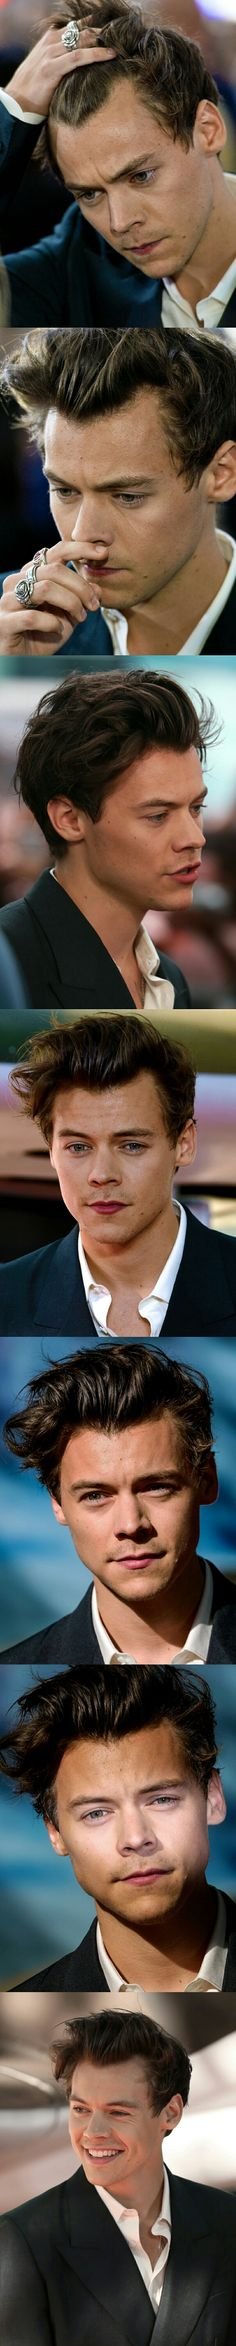 #Harry Styles ❥ at the world premiere for Dunkirk